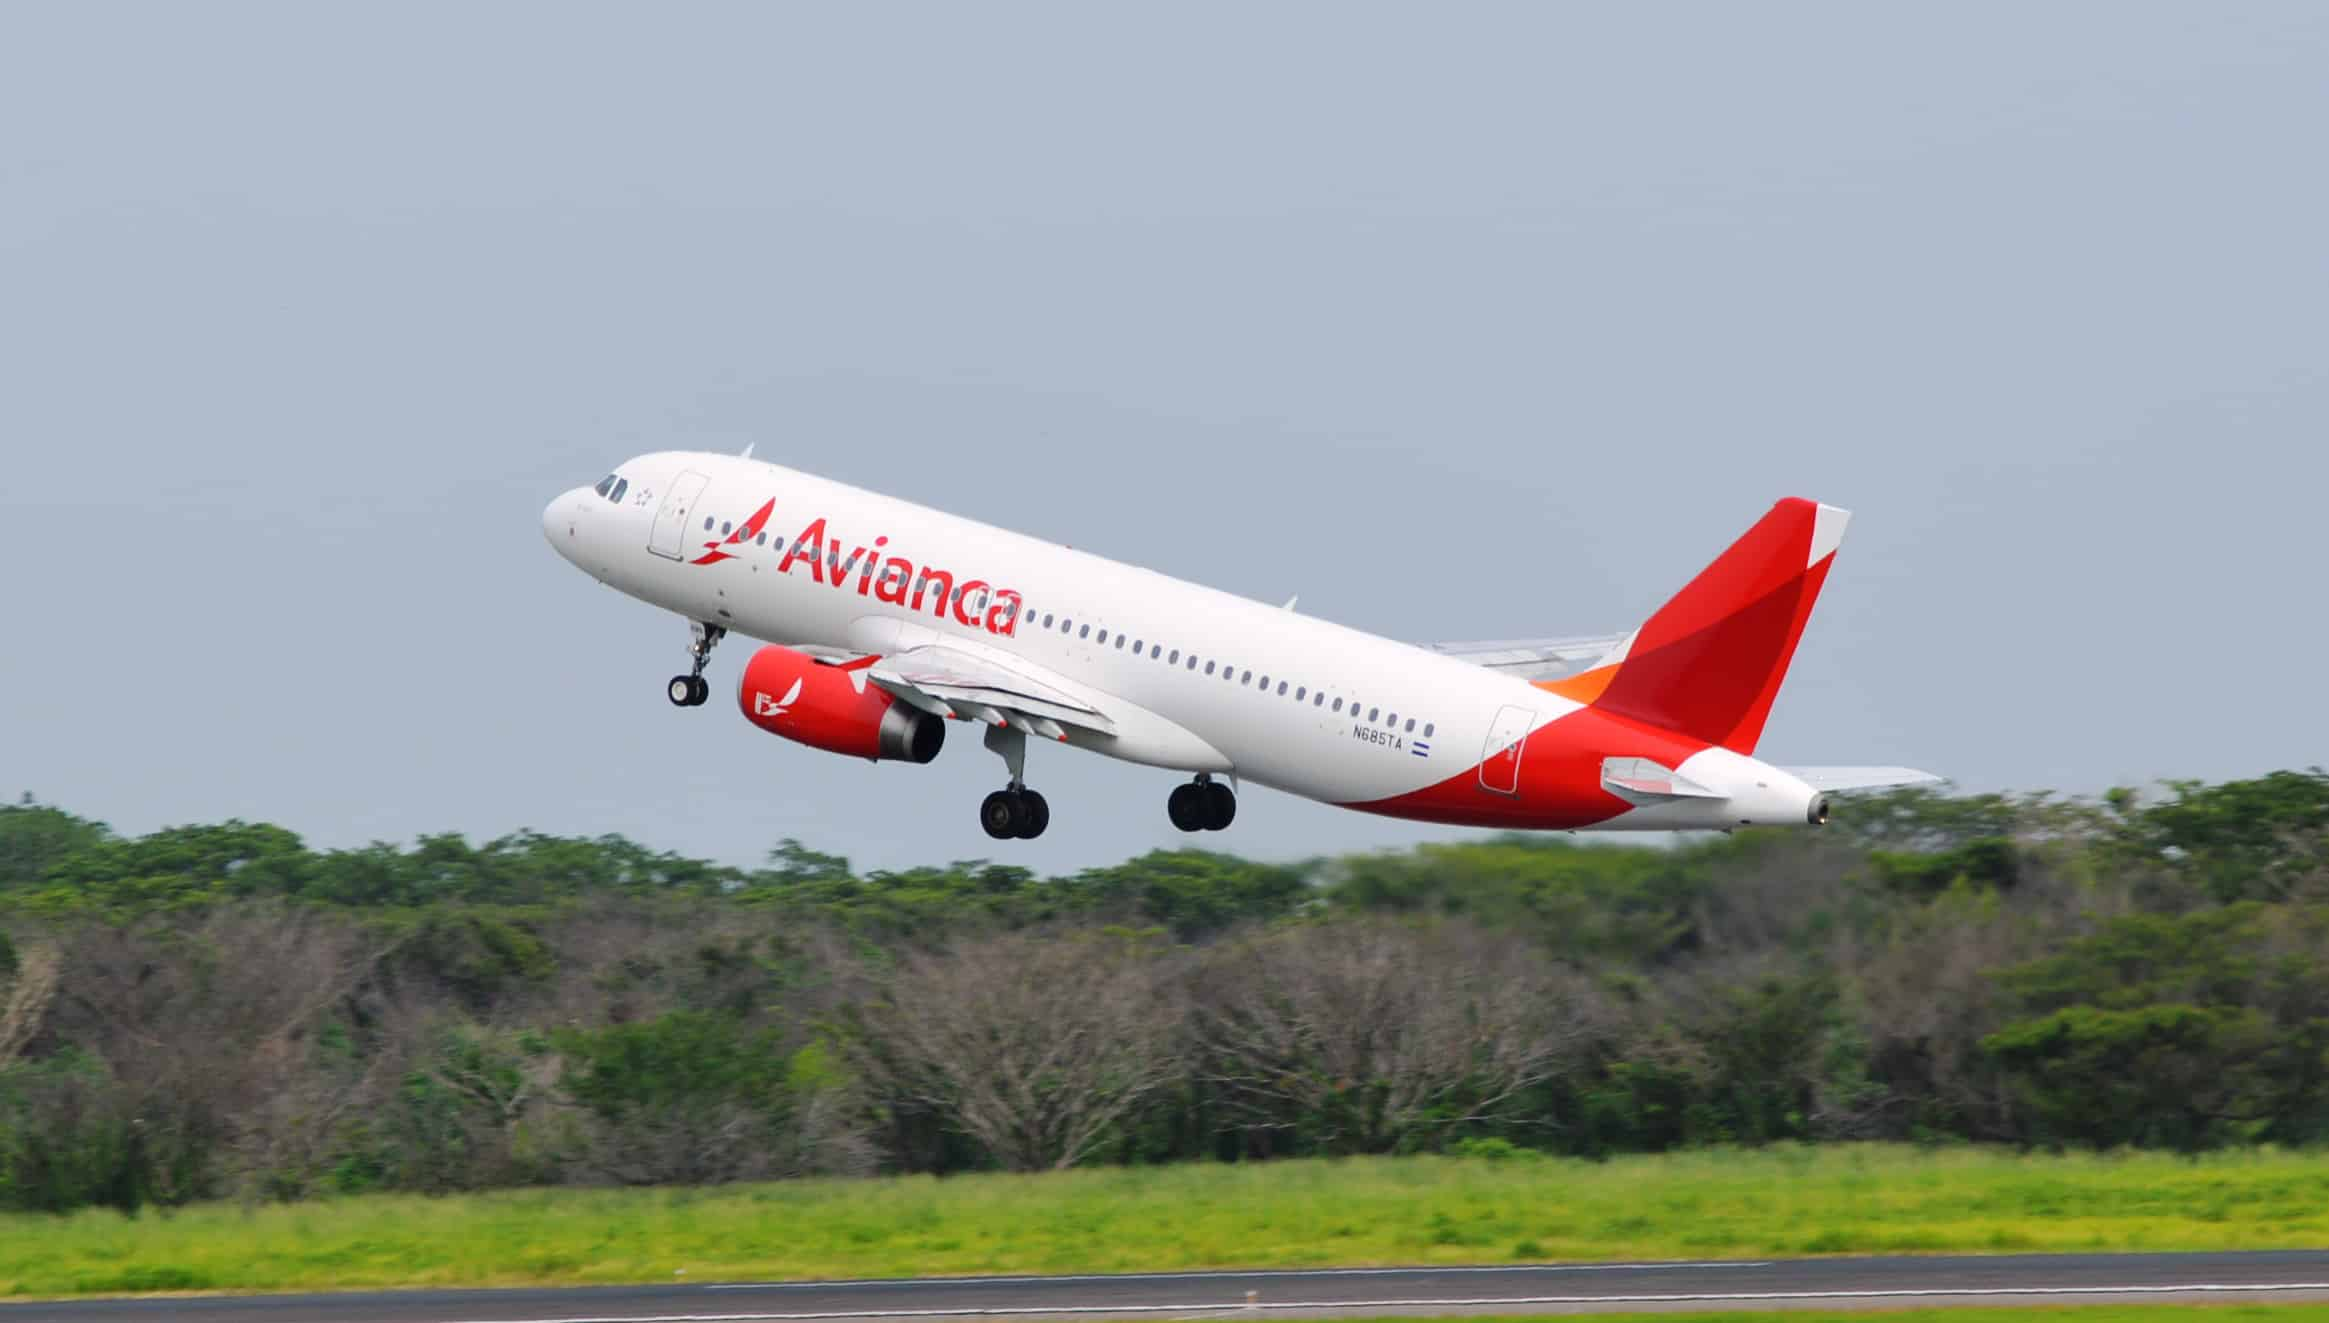 An Avianca flight takes off.